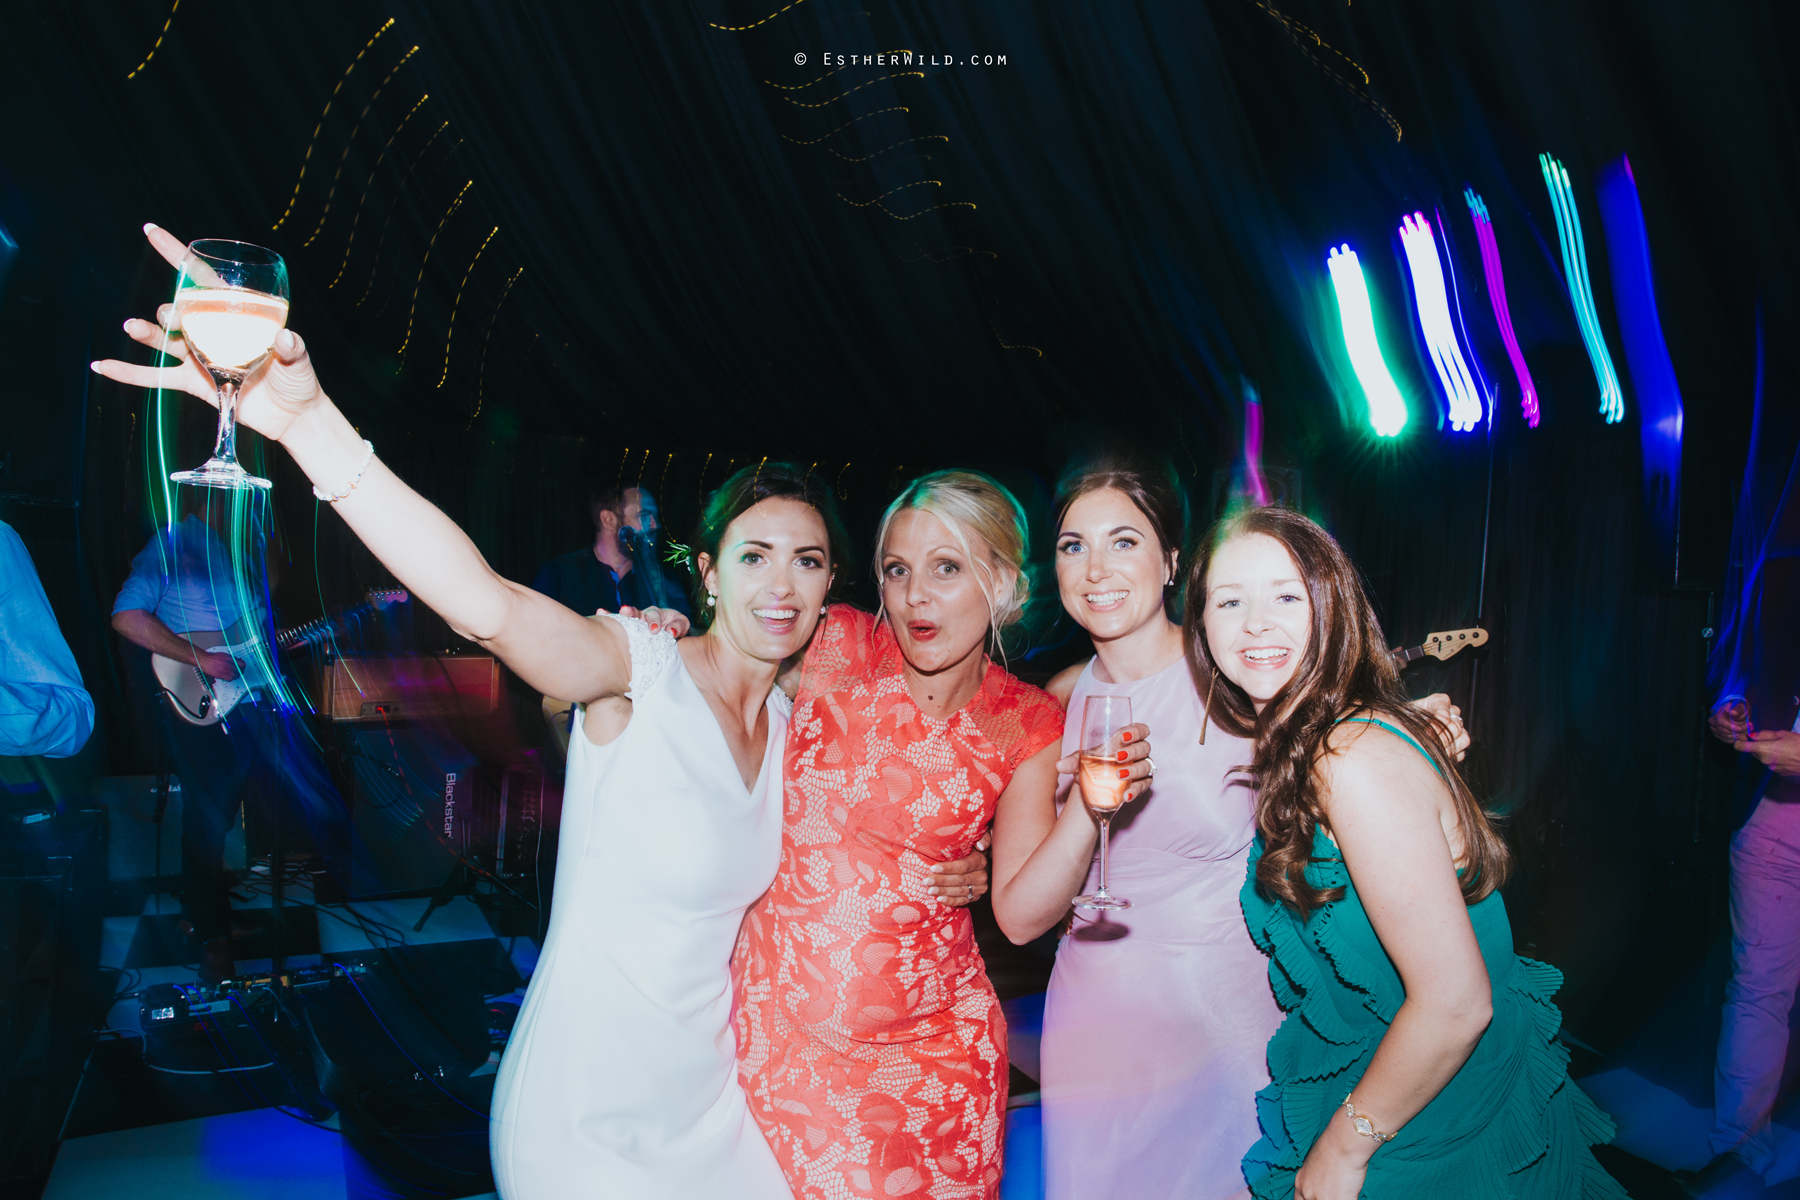 Wootton_Wedding_Copyright_Esther_Wild_Photographer_IMG_3332.jpg